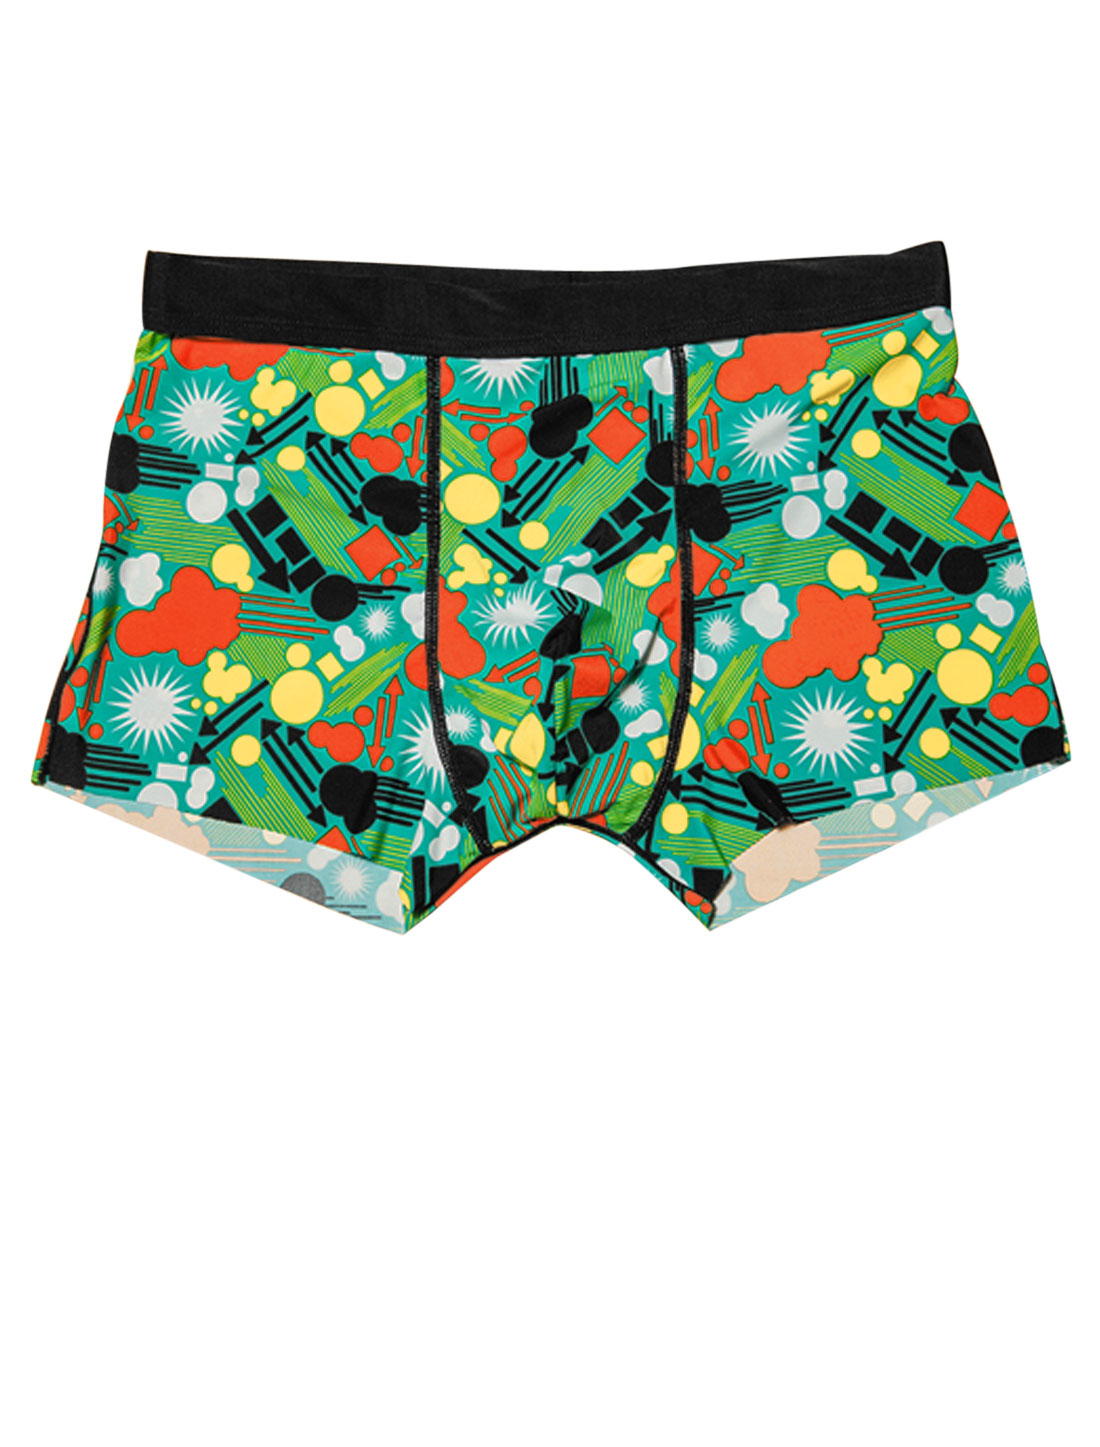 Men Elastic Waist Geometric Novelty Print Stretchy Boxer Briefs Green Teal W30